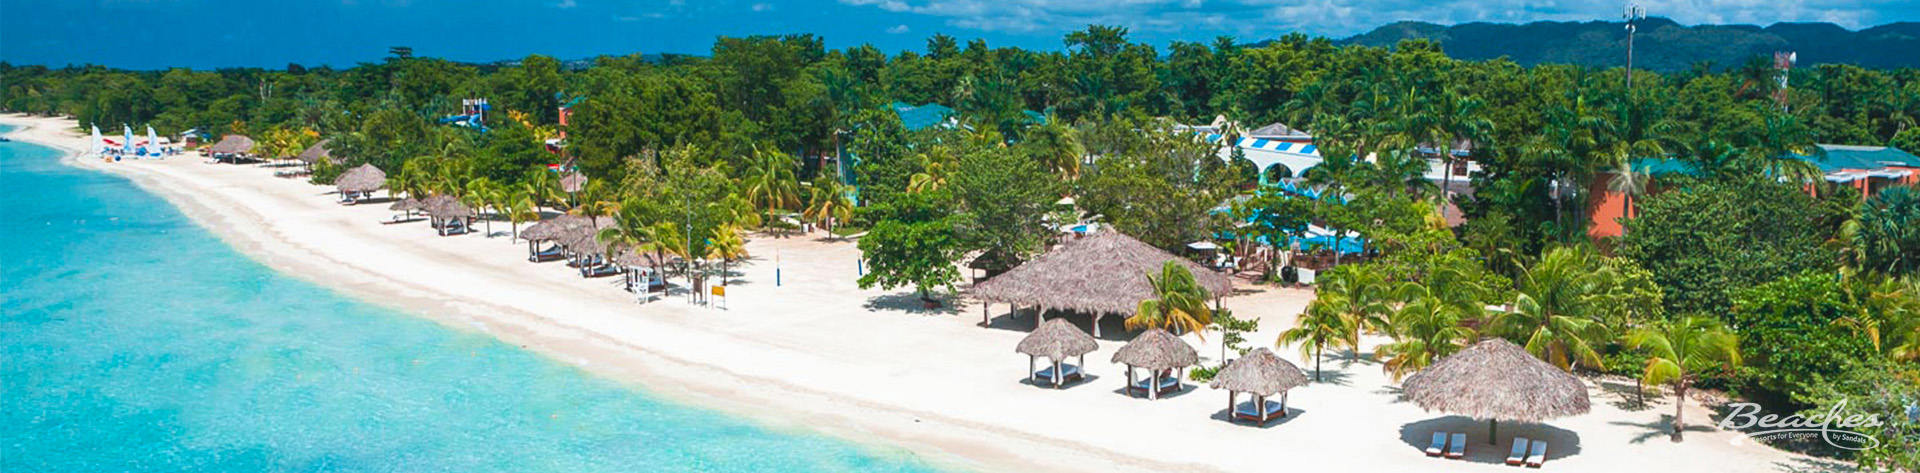 beaches-negril-header-new